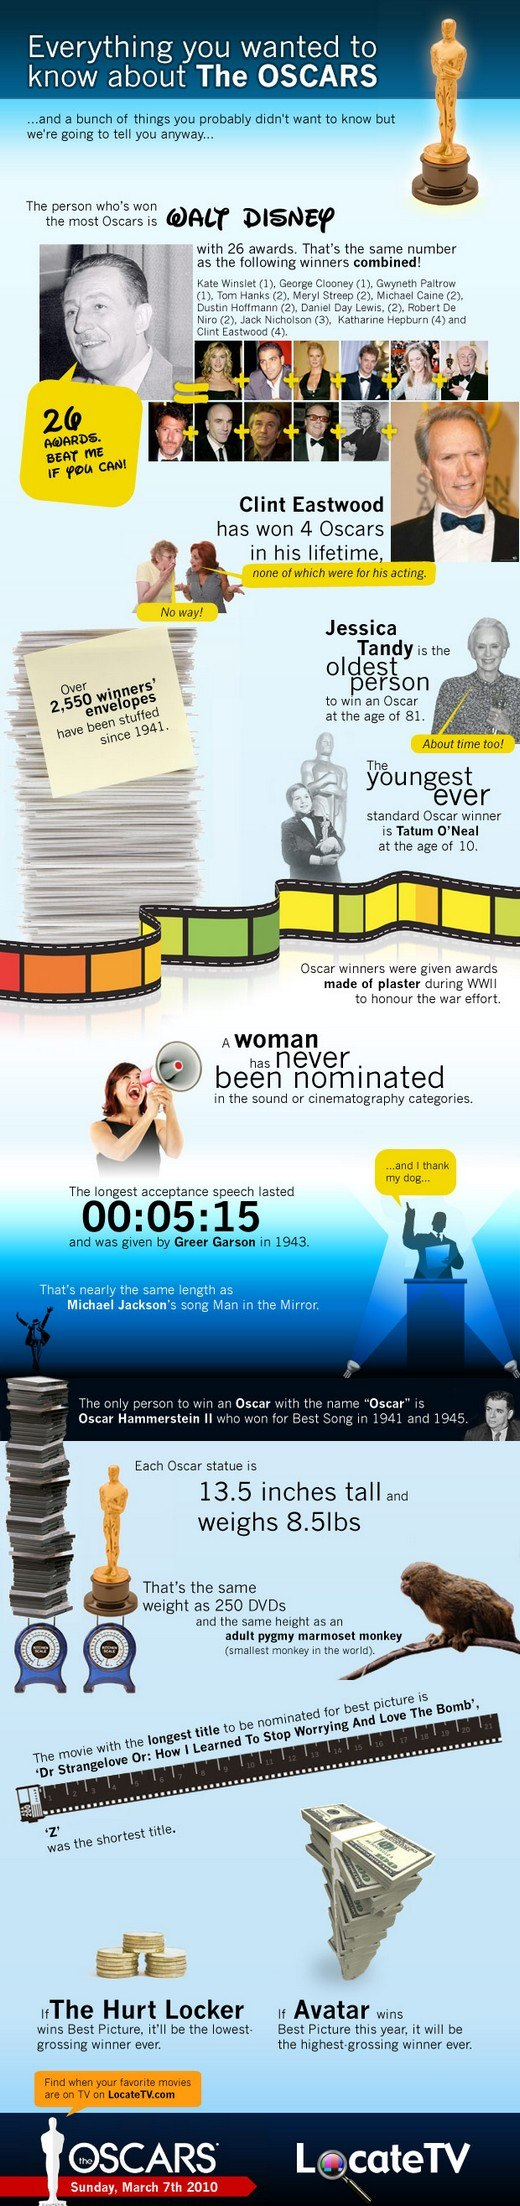 oscars infographic locatetv